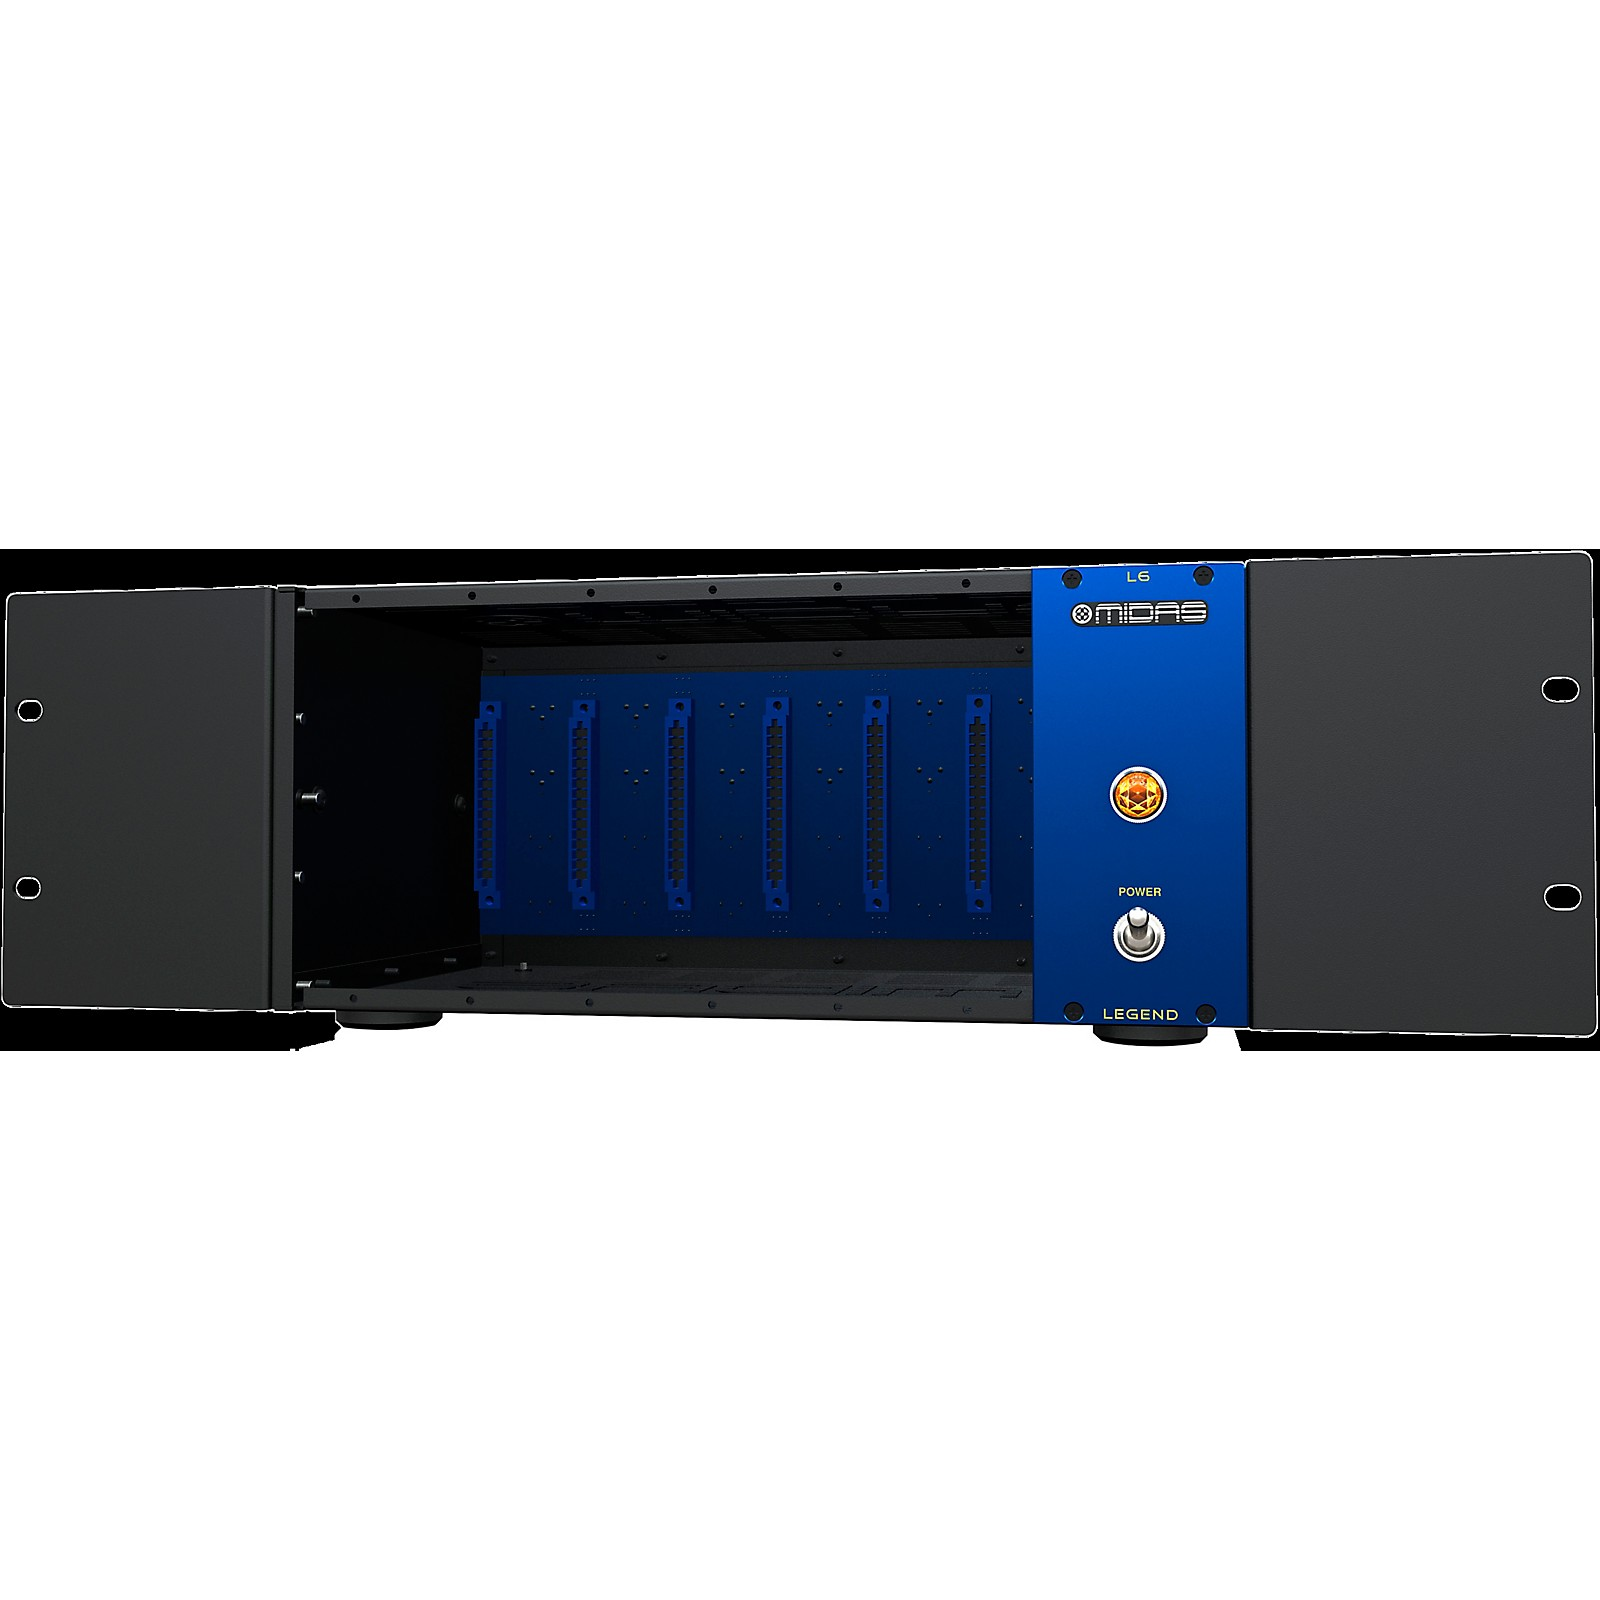 Midas 500 Series Portable Chassis for 6 Modules with Advanced Audio Routing and Rackmount Kit